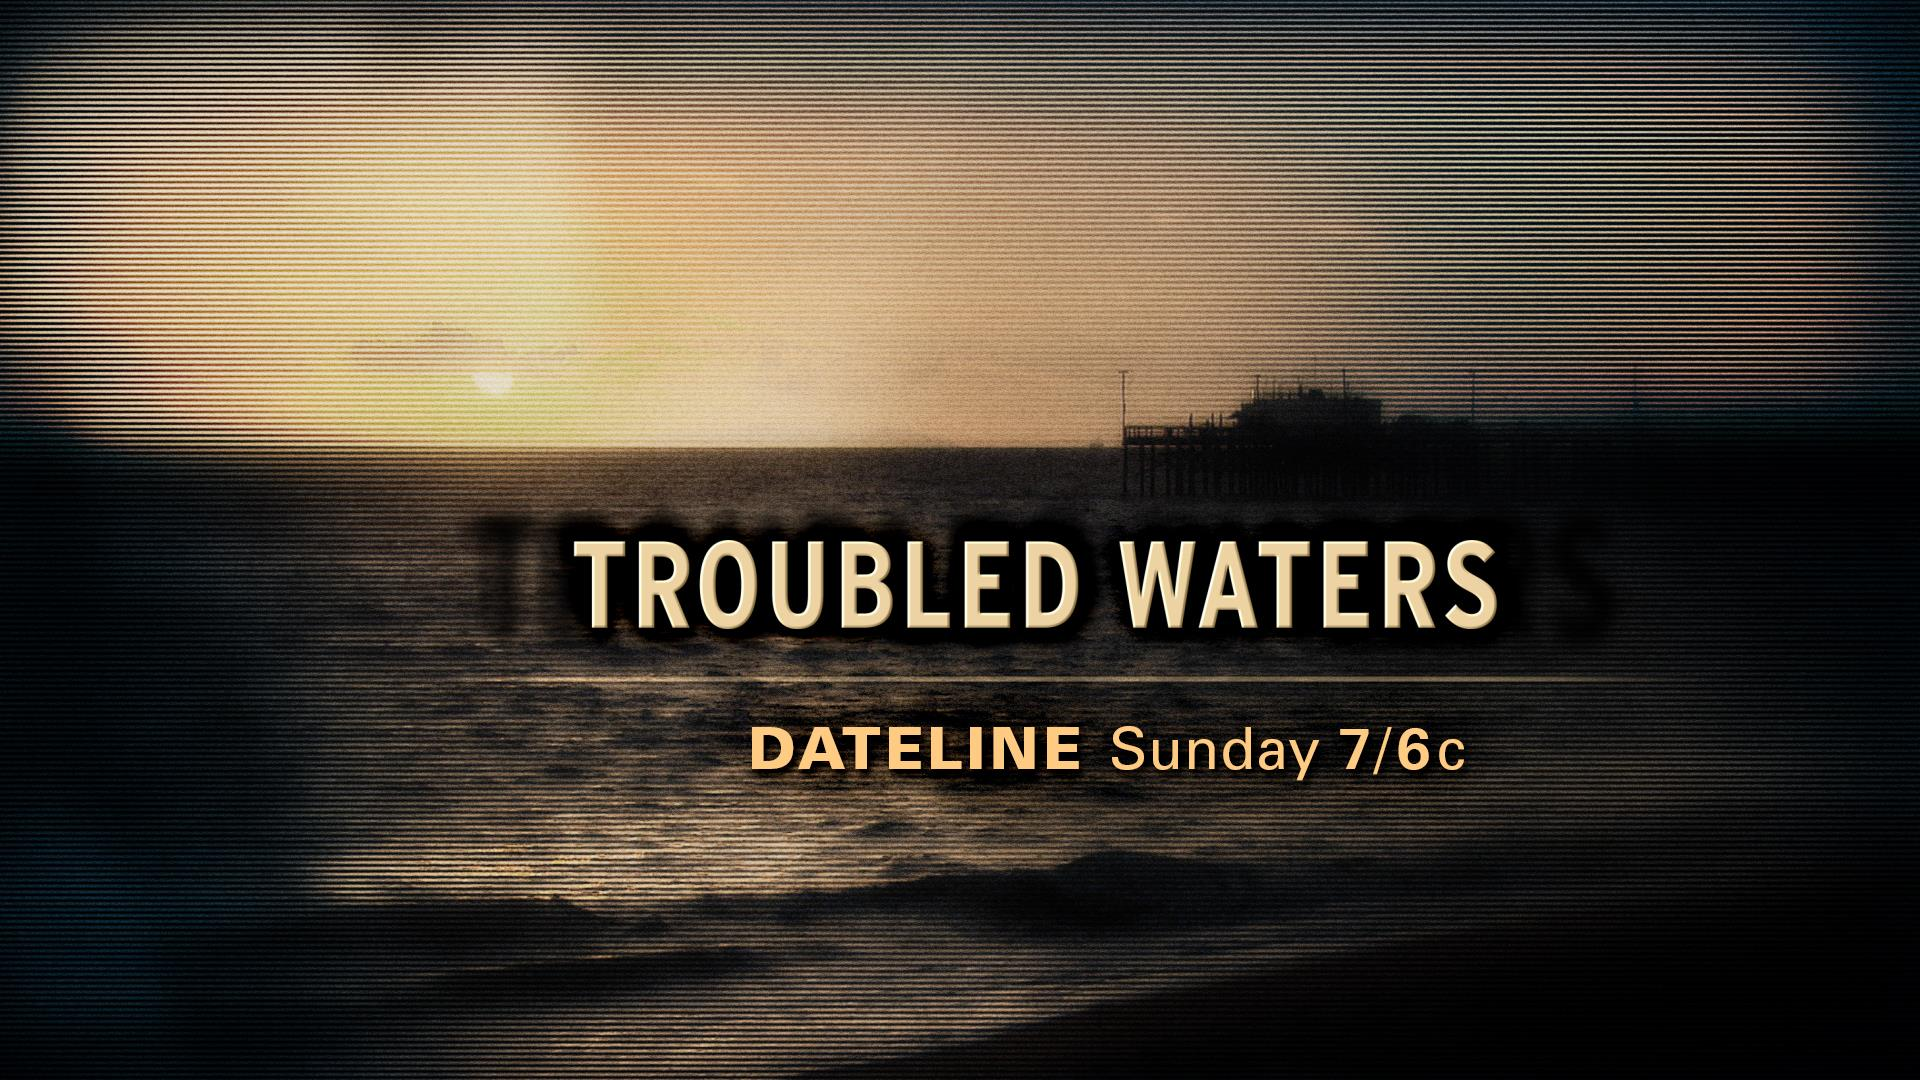 PREVIEW: Troubled Waters